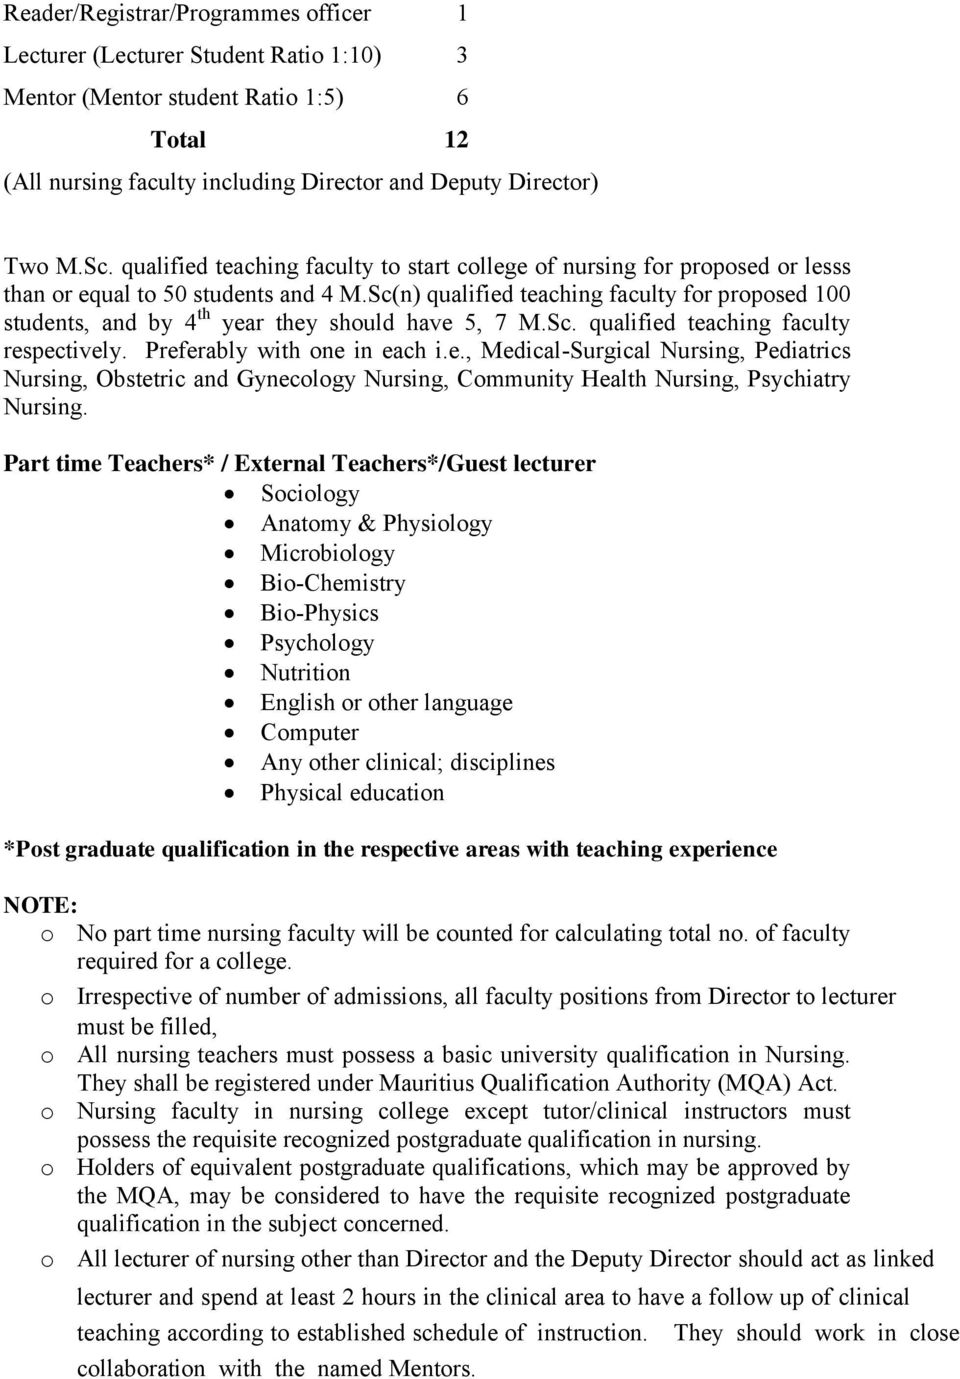 Sc(n) qualified teaching faculty for proposed 100 students, and by 4 th year they should have 5, 7 M.Sc. qualified teaching faculty respectively. Preferably with one in each i.e., Medical-Surgical Nursing, Pediatrics Nursing, Obstetric and Gynecology Nursing, Community Health Nursing, Psychiatry Nursing.